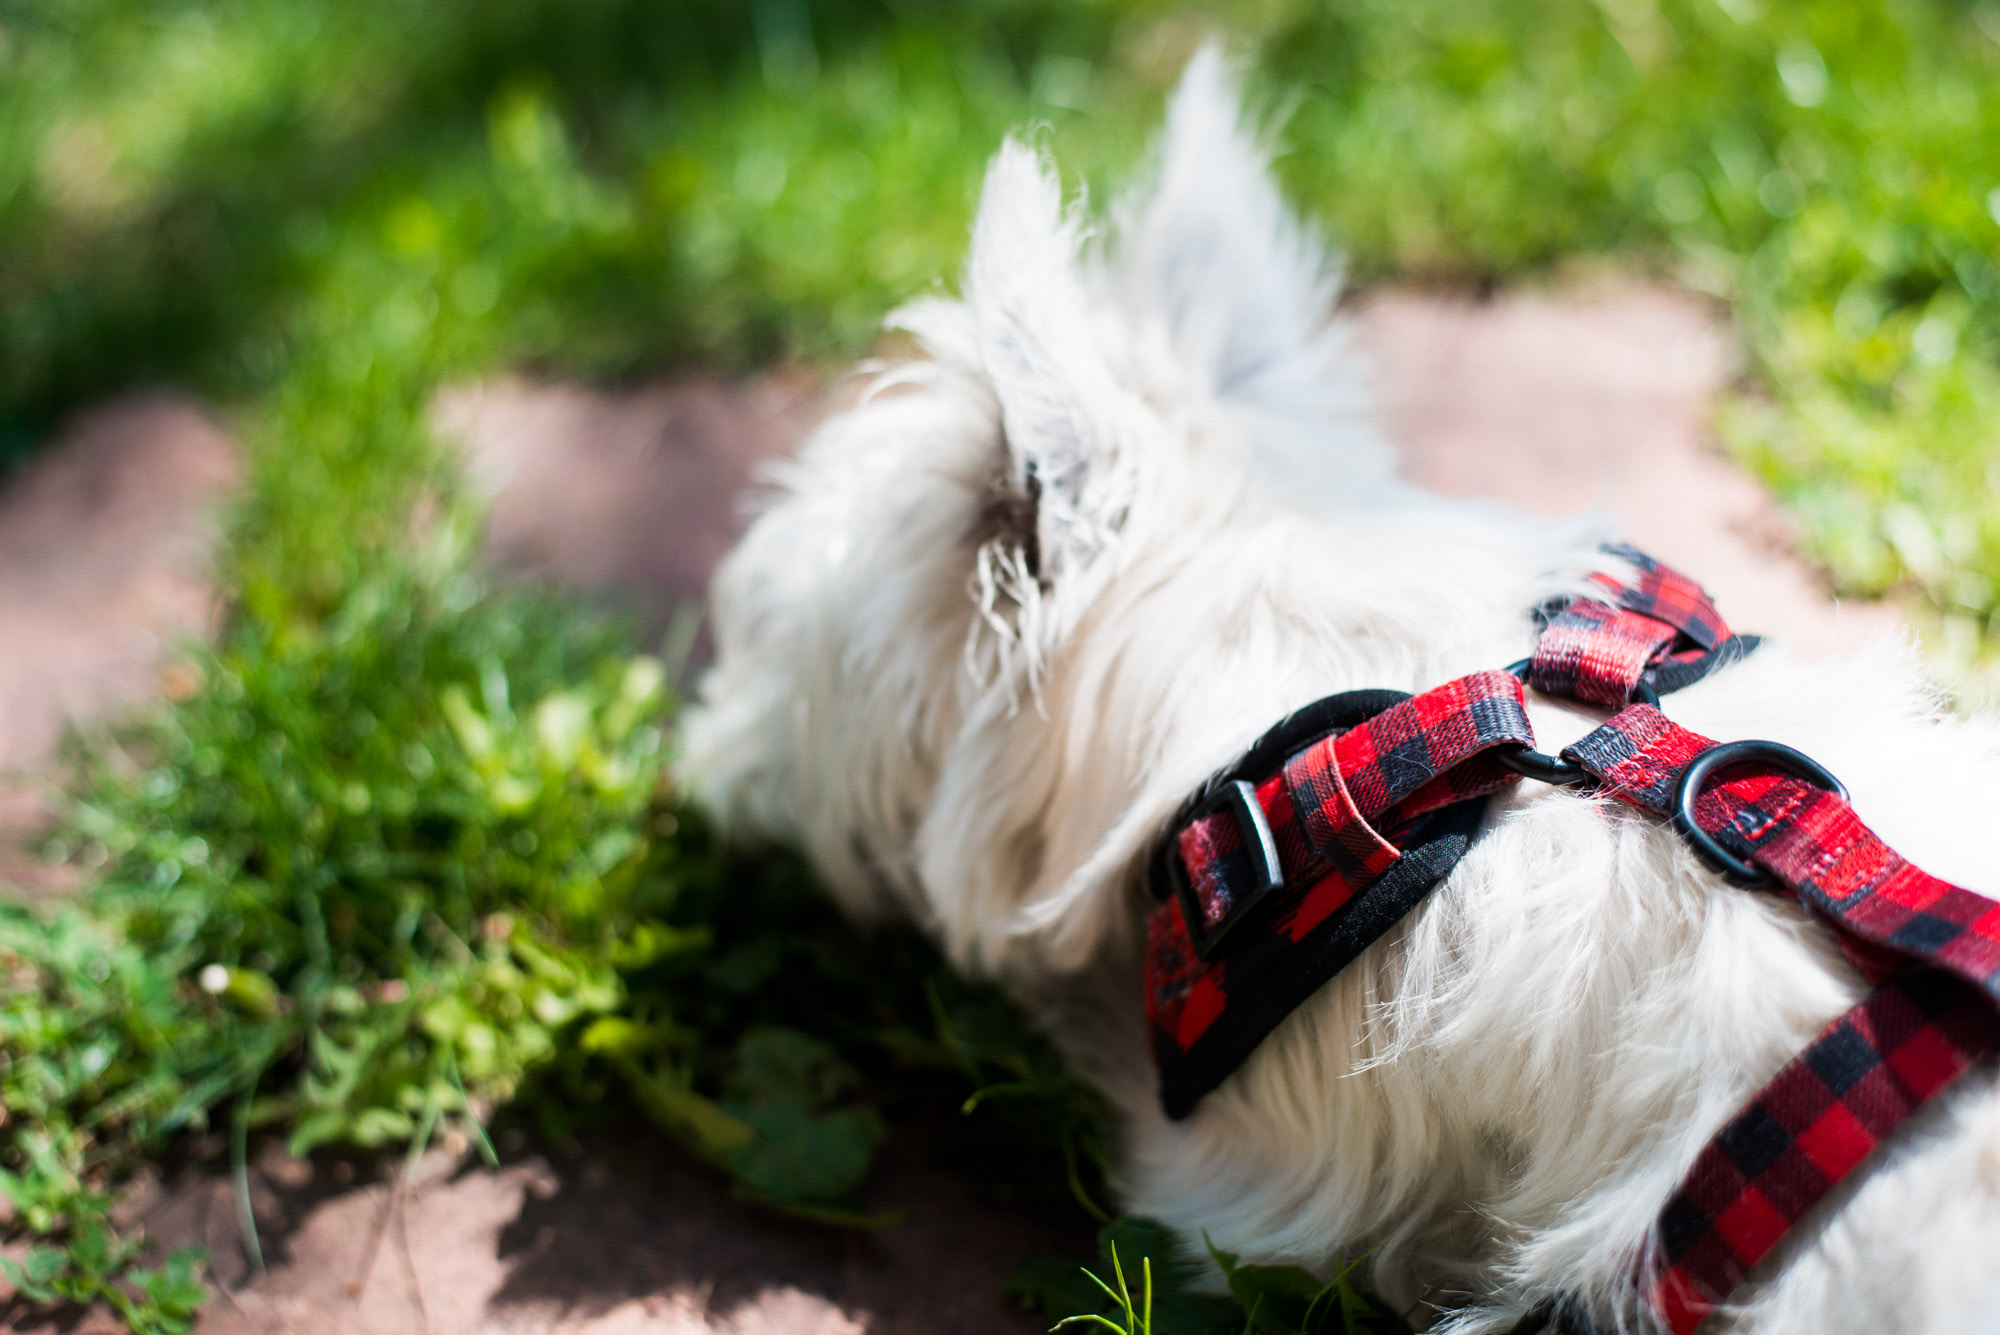 Mozi, The Westie, sleeping the grass at 6 months